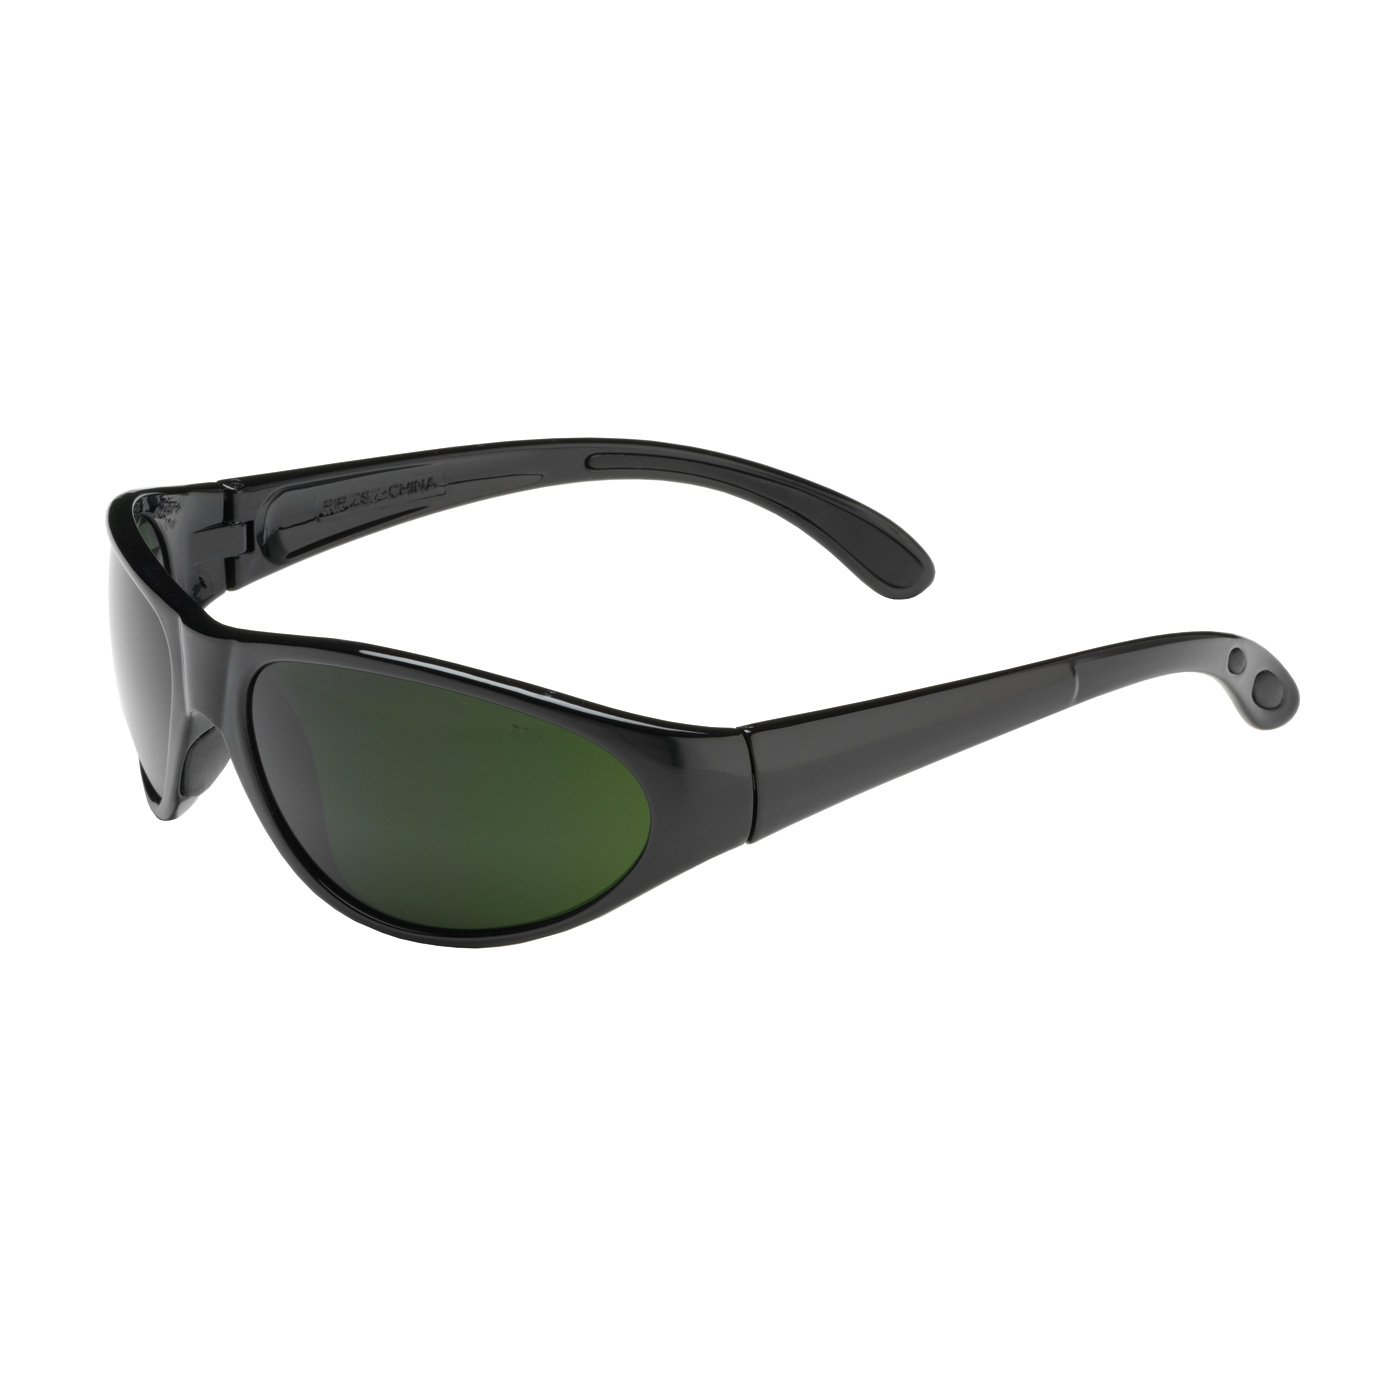 Pirana 250-40-0015 Full Frame Safety Glasses with Black Frame, IR Shade 5.0 Lens and Anti-Scratch Coating